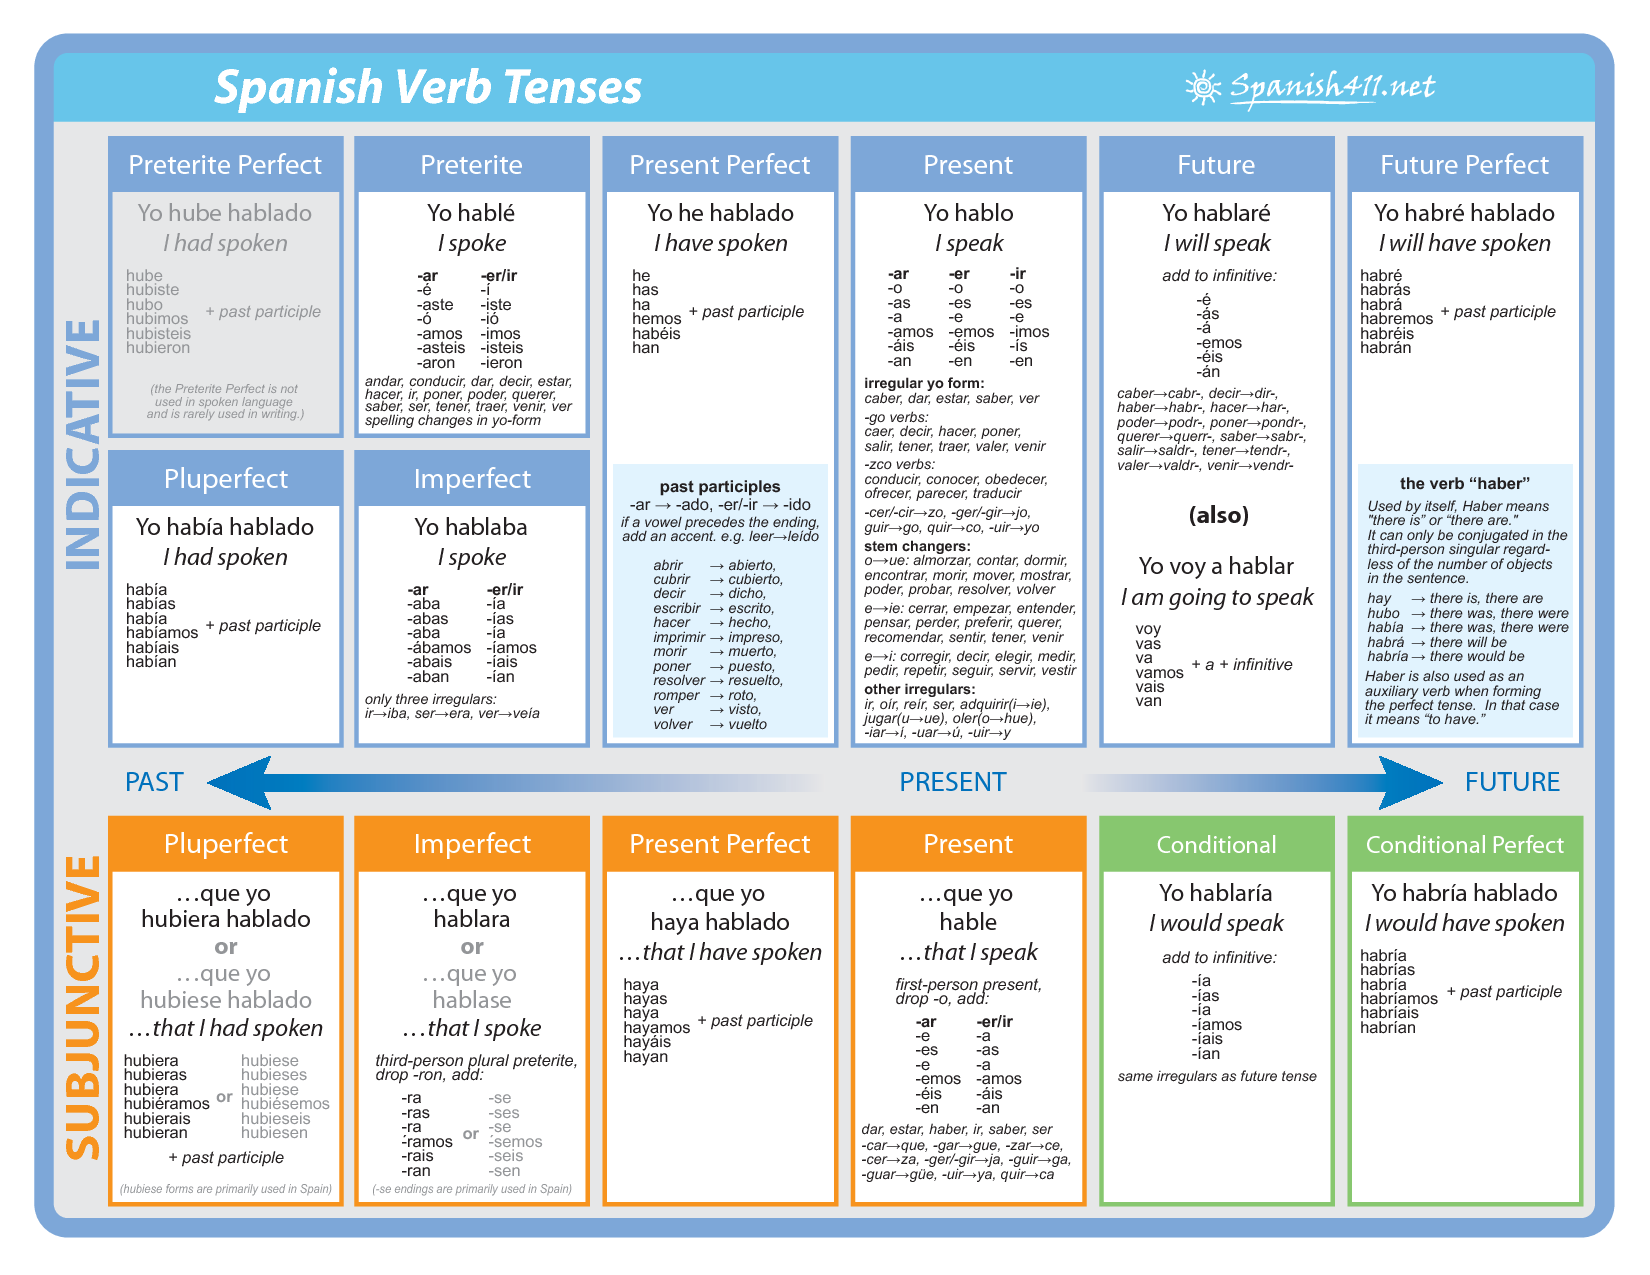 all english tenses Find and save ideas about all tenses on pinterest | see more ideas about all verbs, tenses of verbs and all tenses in english.